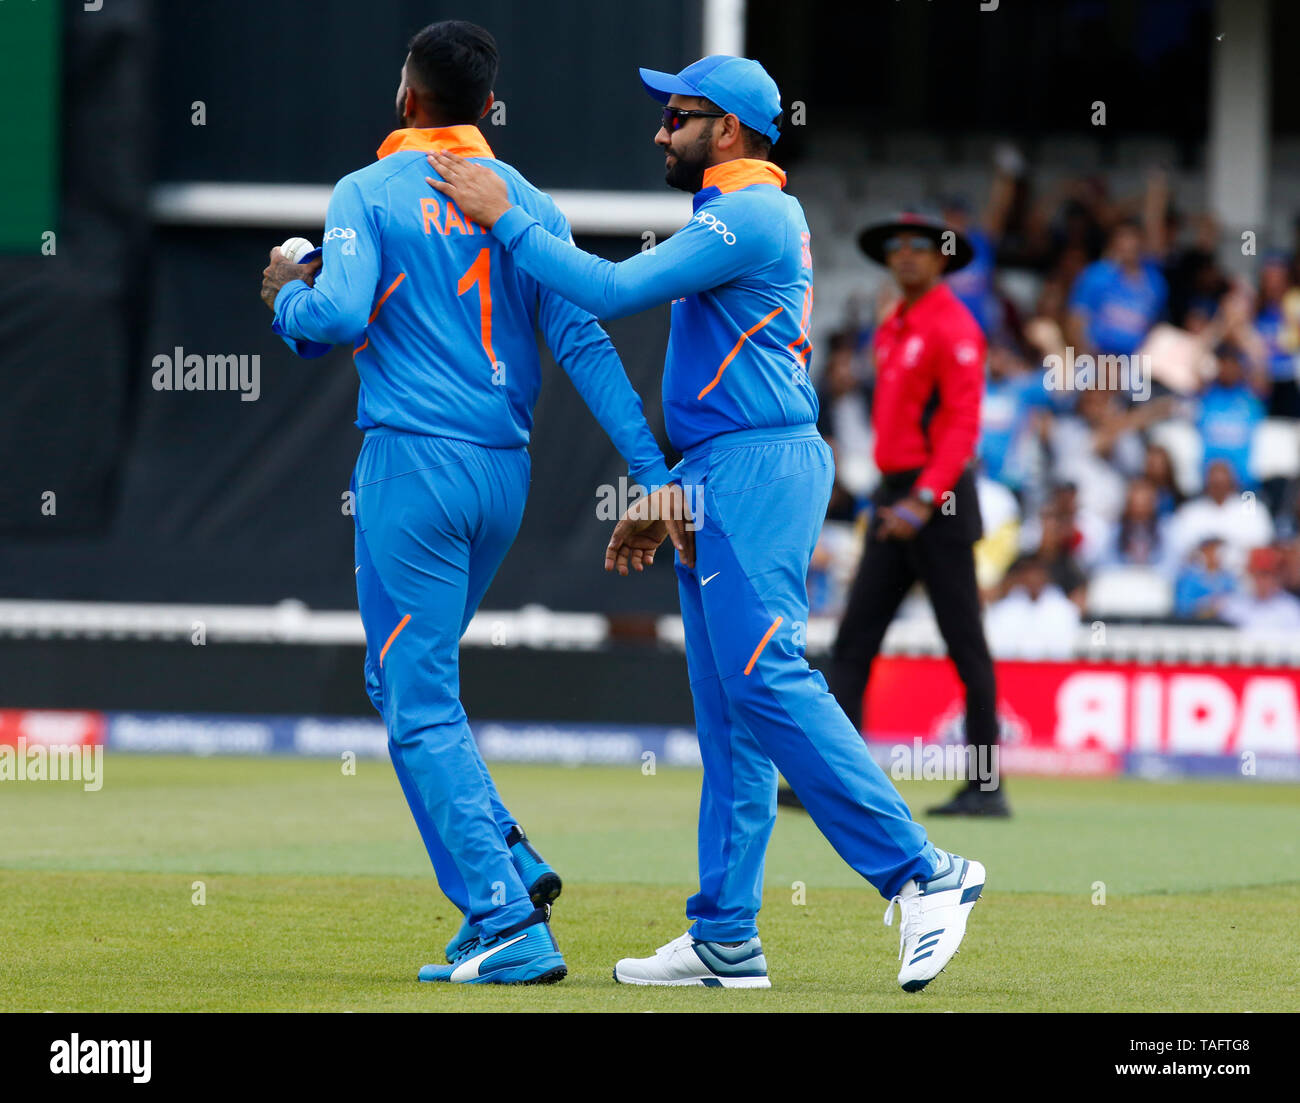 LONDON, United Kingdom. 25 MAY, 2019. KL Rahul of India caught Martin Guptill of New Zealand and bowled by Hardik Pandya of India during ICC World Cup - Warm - Up between India and New Zealand at the Oval Stadium , London,  on 25 May 2019 Credit Action Foto Sport News News Credit: Action Foto Sport/Alamy Live News Stock Photo